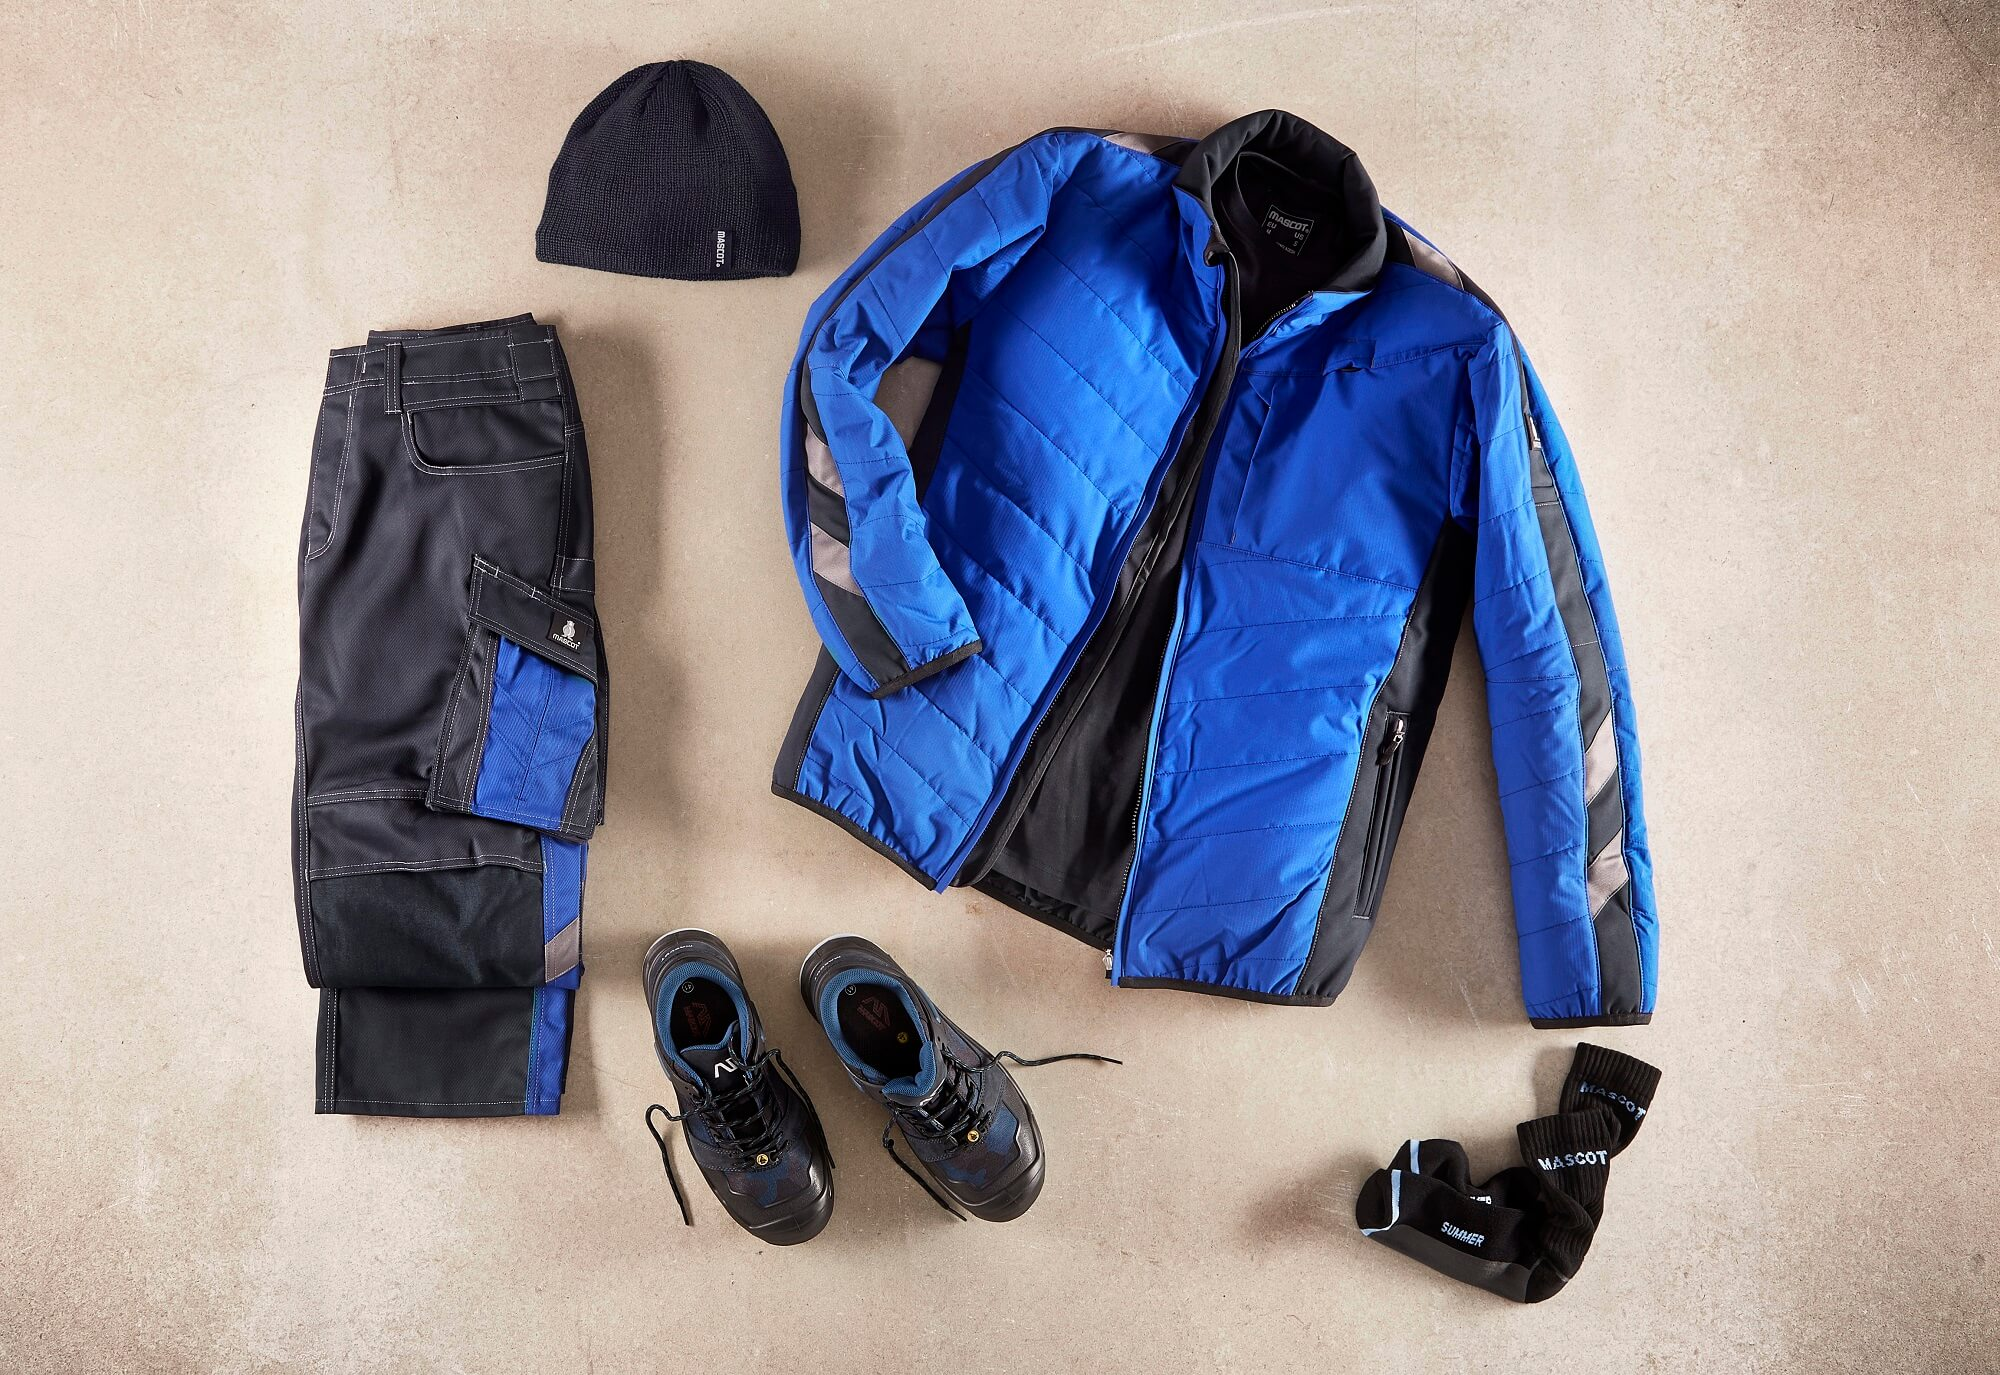 Royal blue - Thermal Jacket, Work Pants, Safety footwear & Knitted Hat - Collage